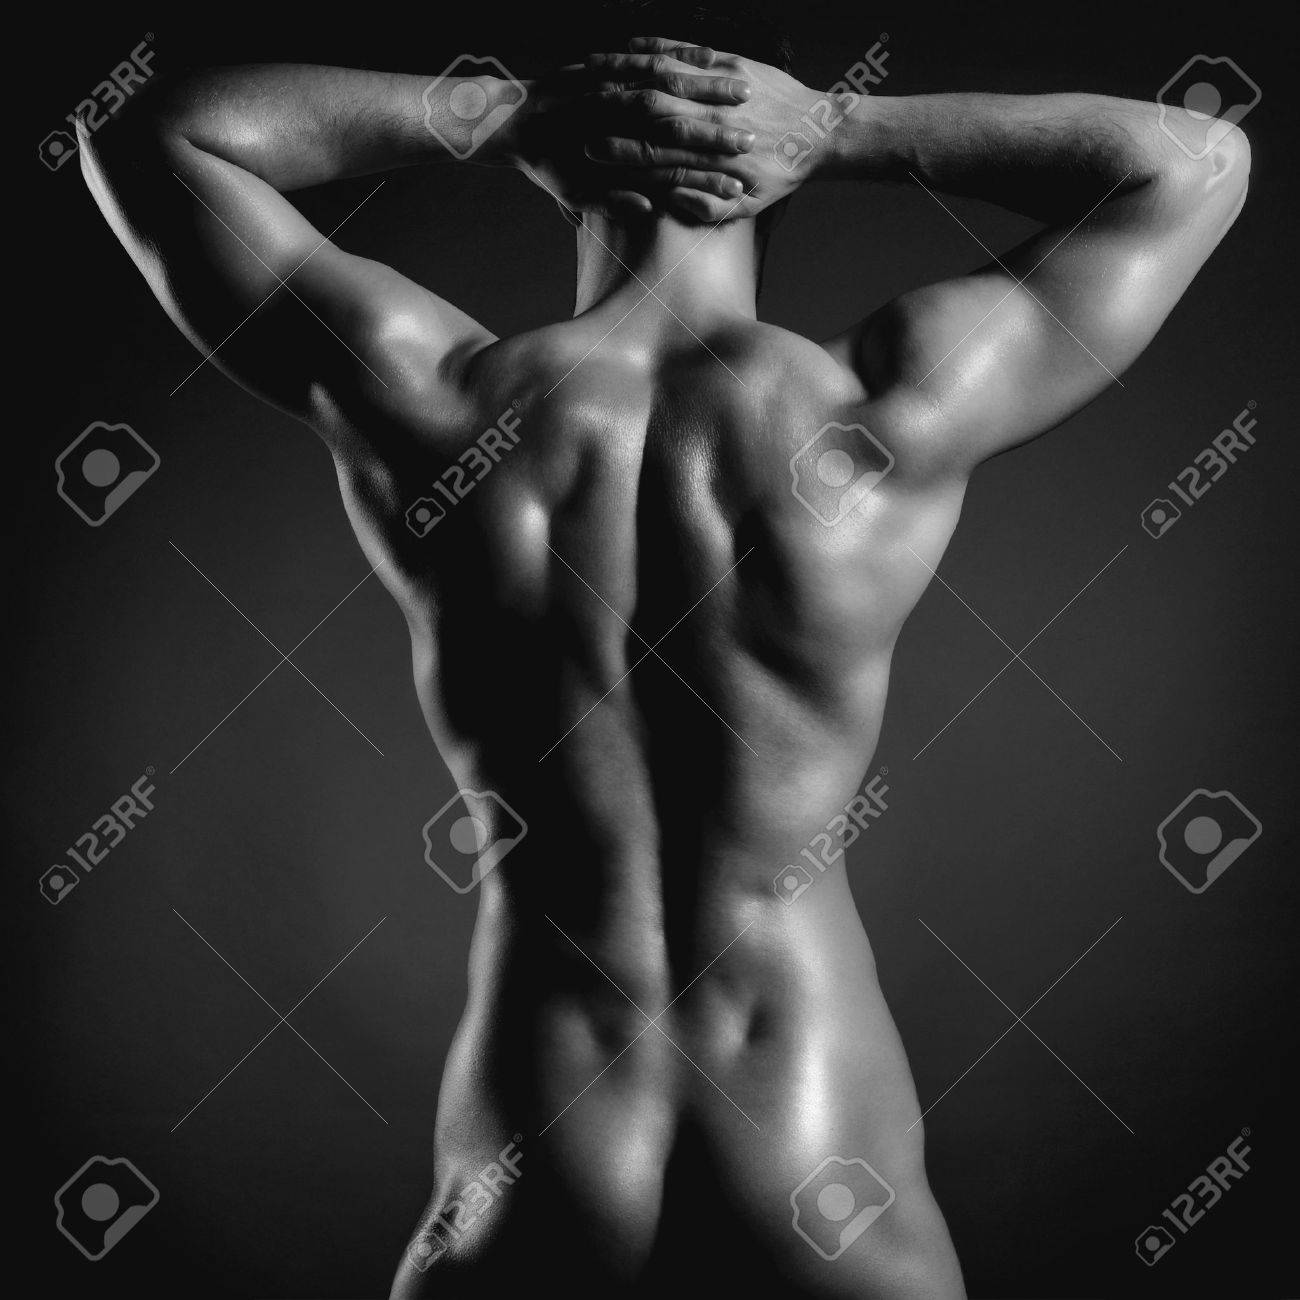 Poto of naked athlete with strong body Standard-Bild - 33628140